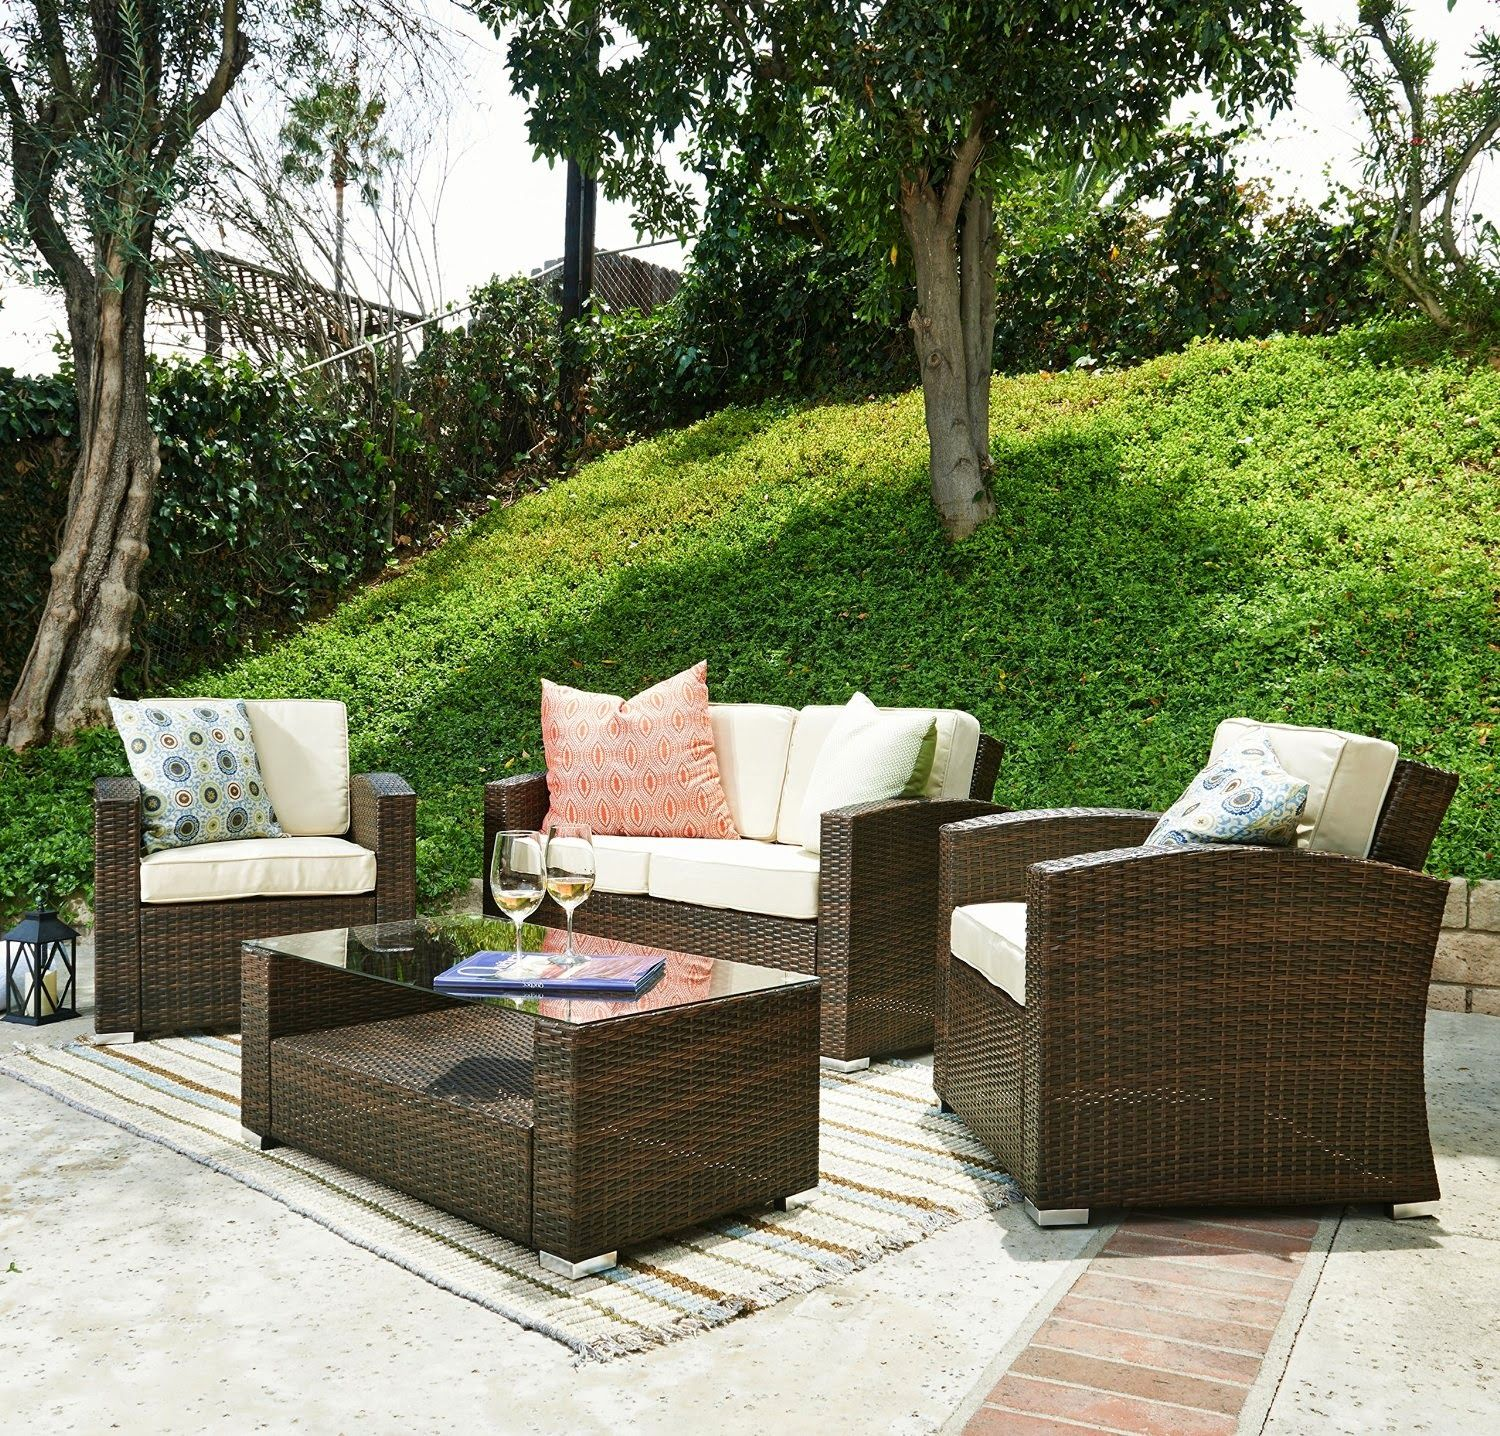 Discount Special Sale off for Outdoor Furniture Sofa 4pcs